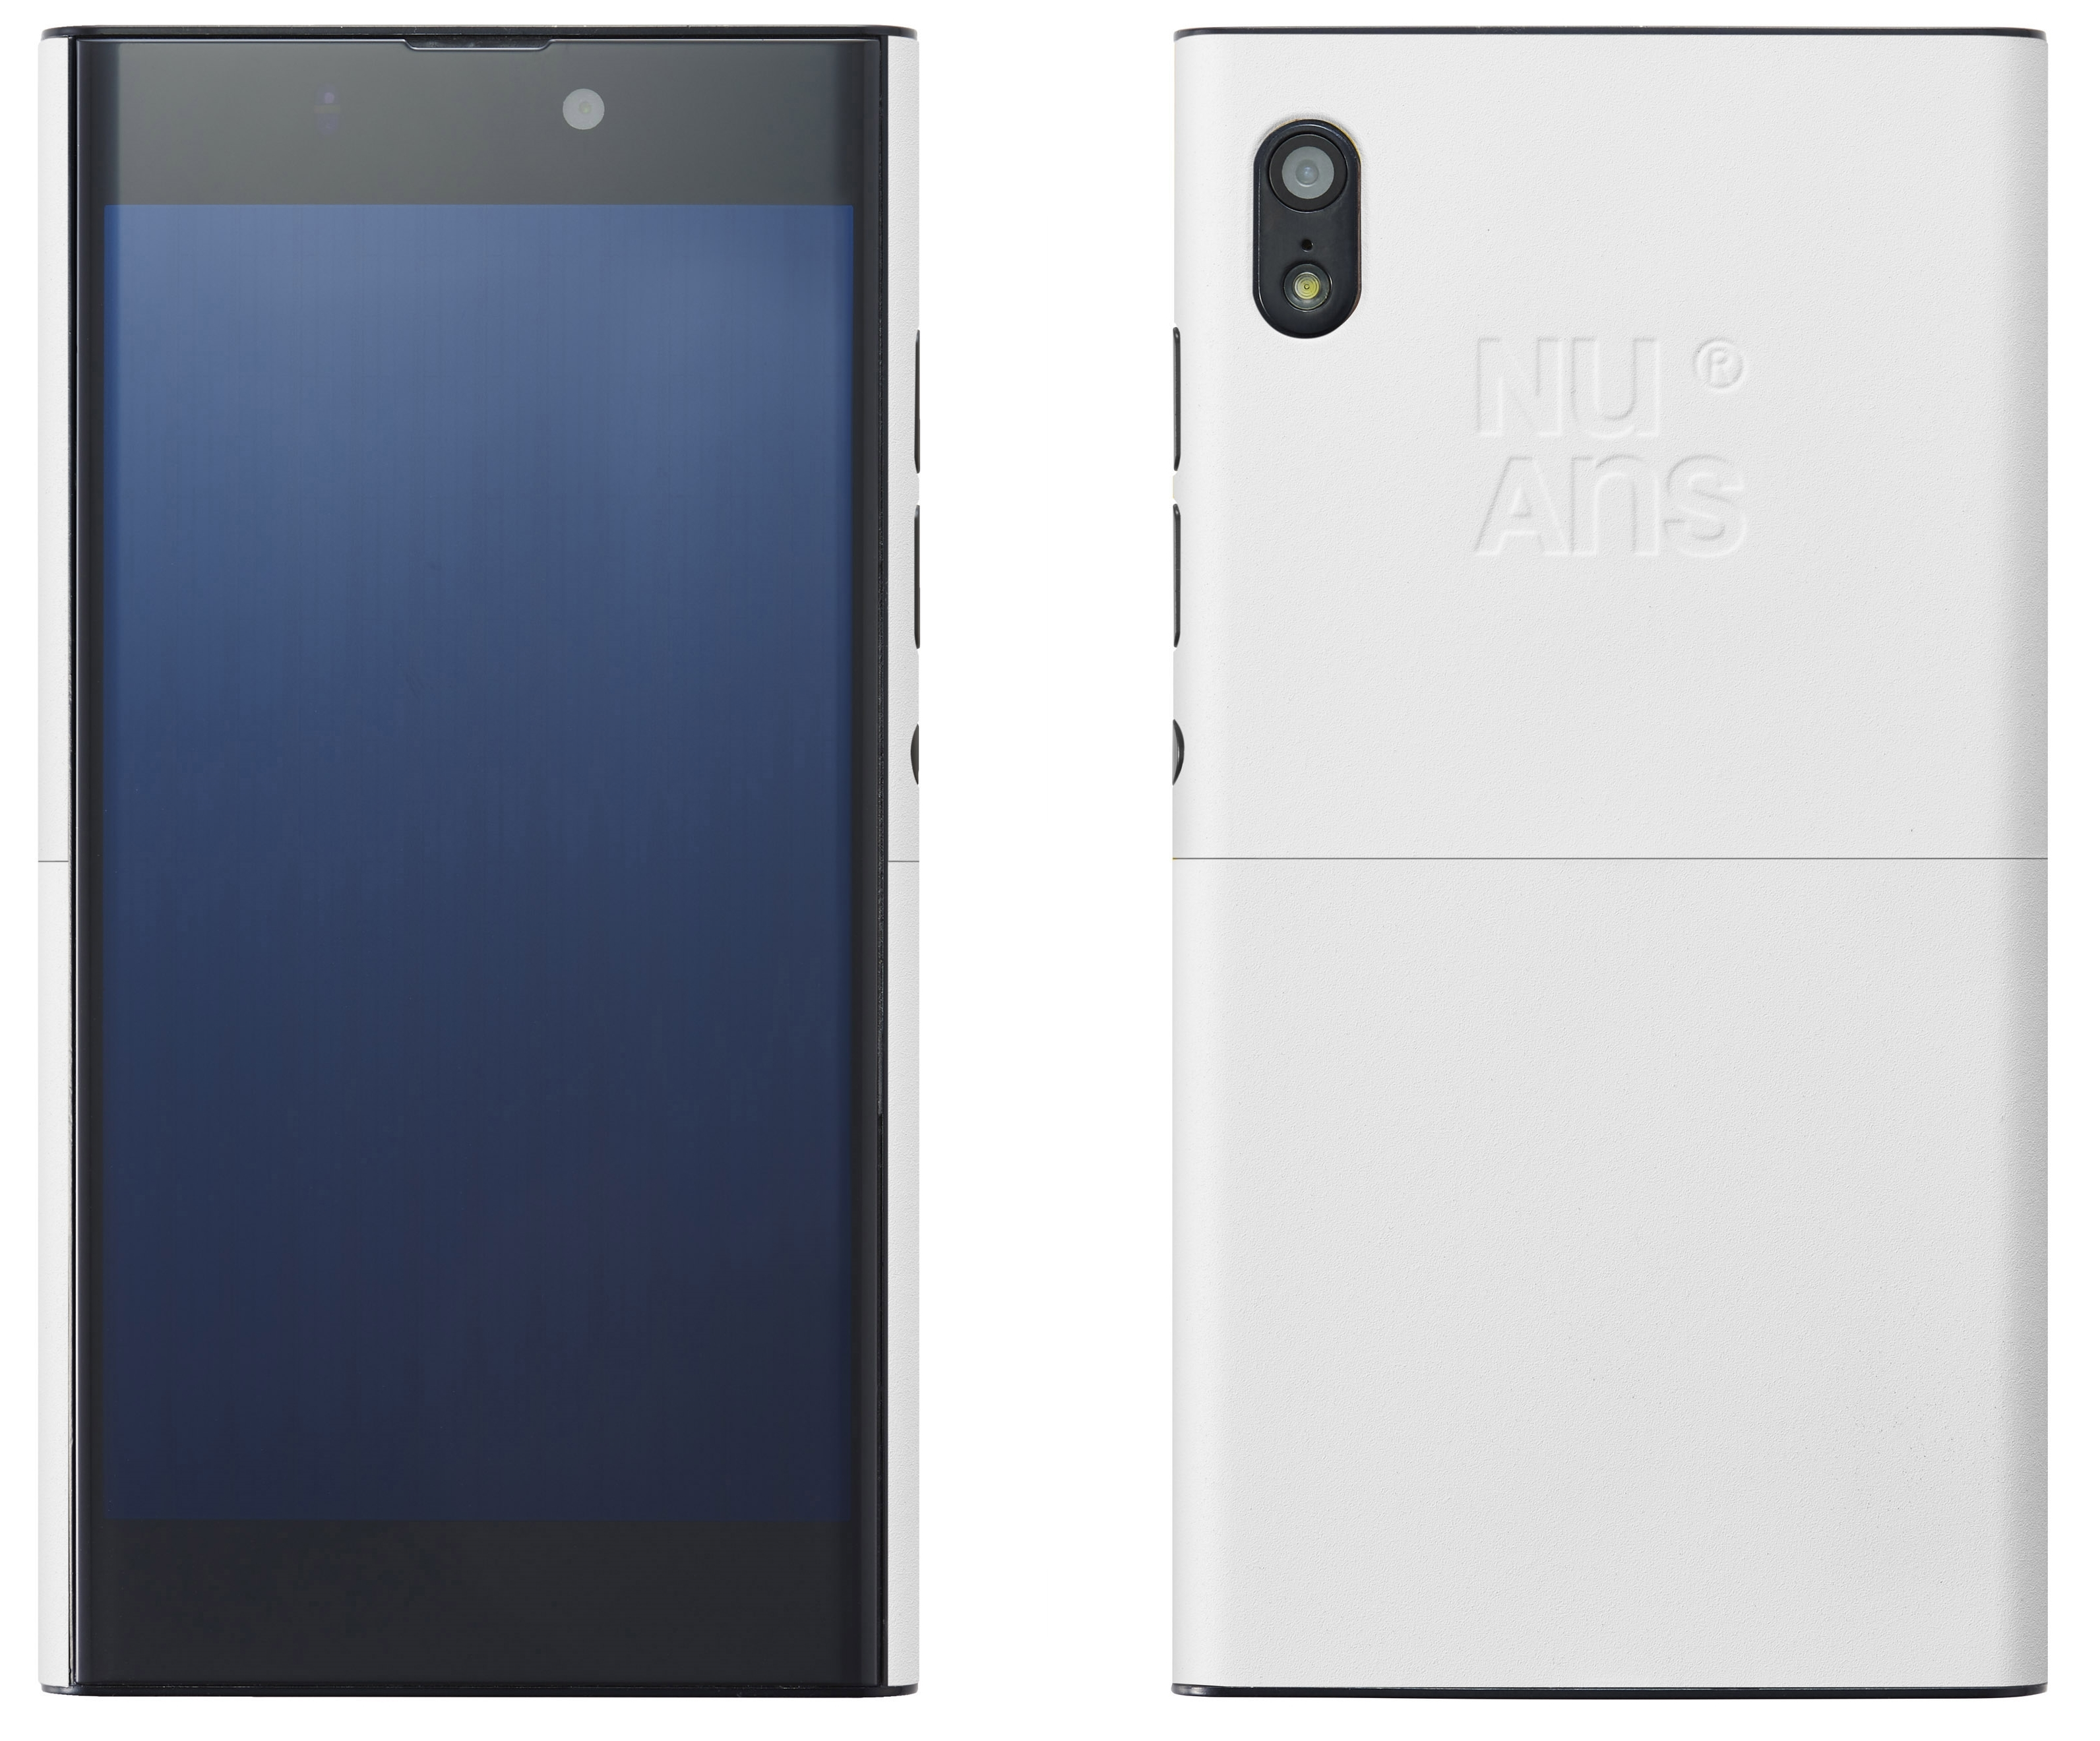 Trinity Nuans Neo Is A New Windows 10 Mobile Smartphone